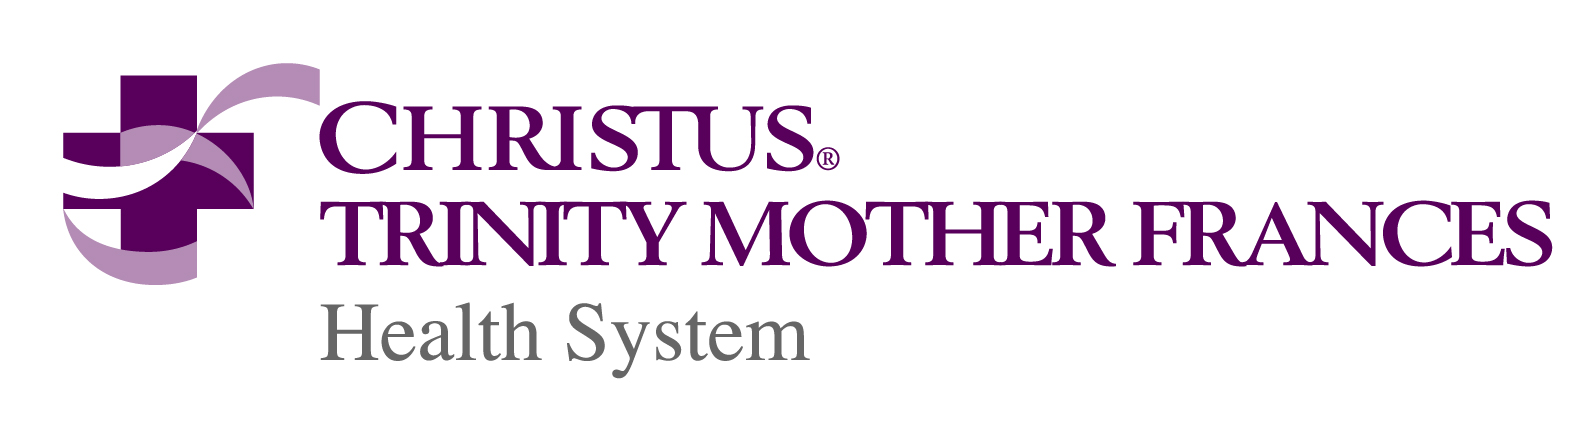 CHRISTUS Trinity Mother Frances Health System logo